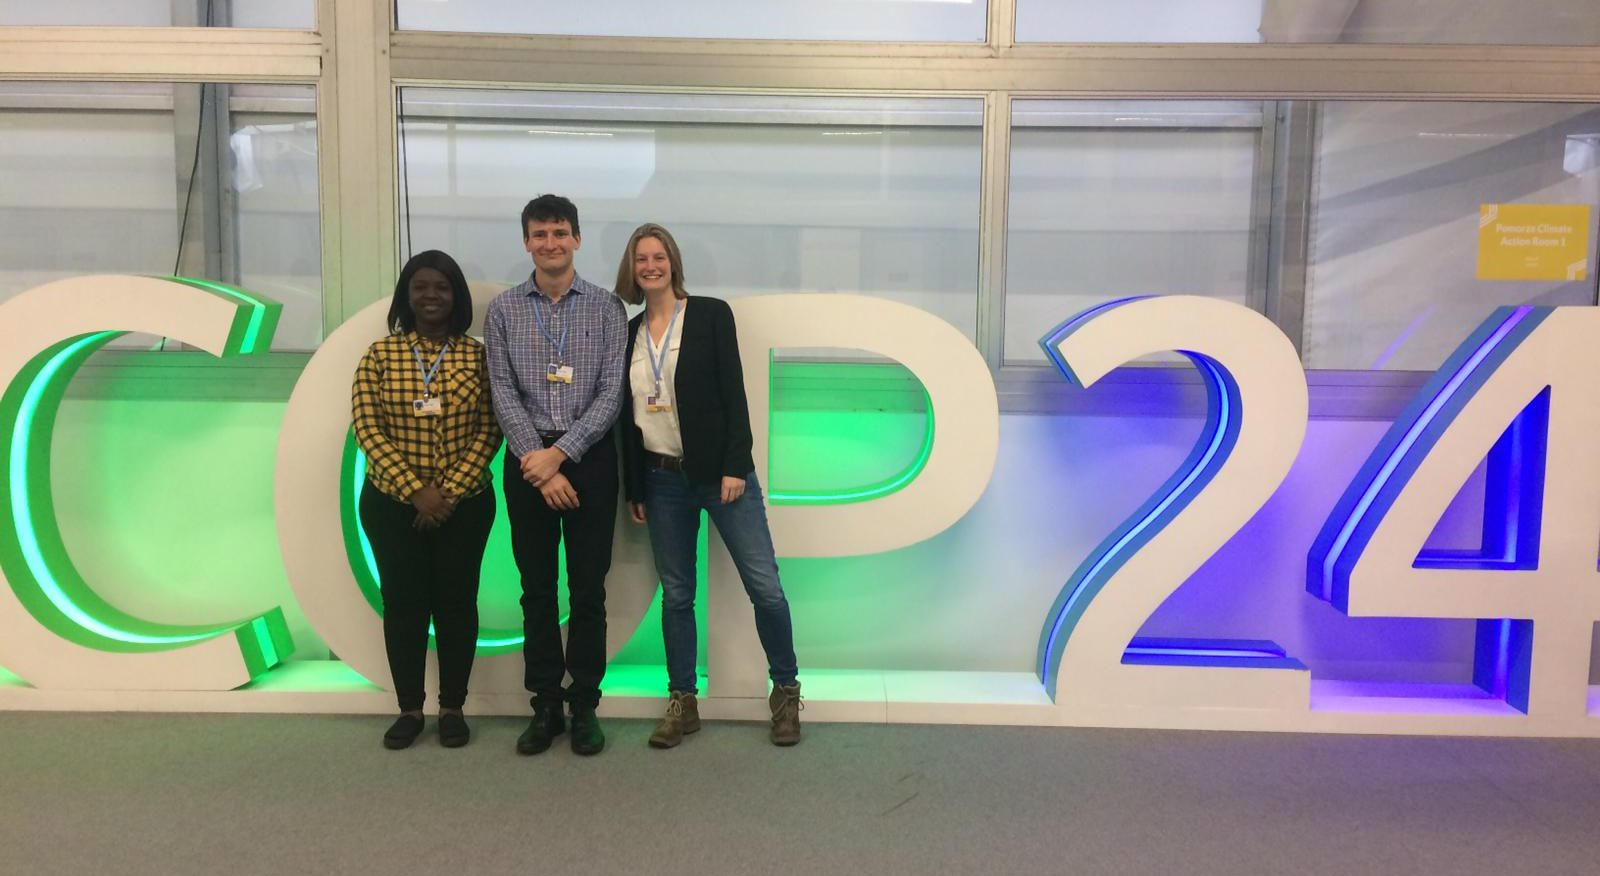 COP24 - some of the Grantham Scholars posing in front of the massive COP logo: what's it like at COP?